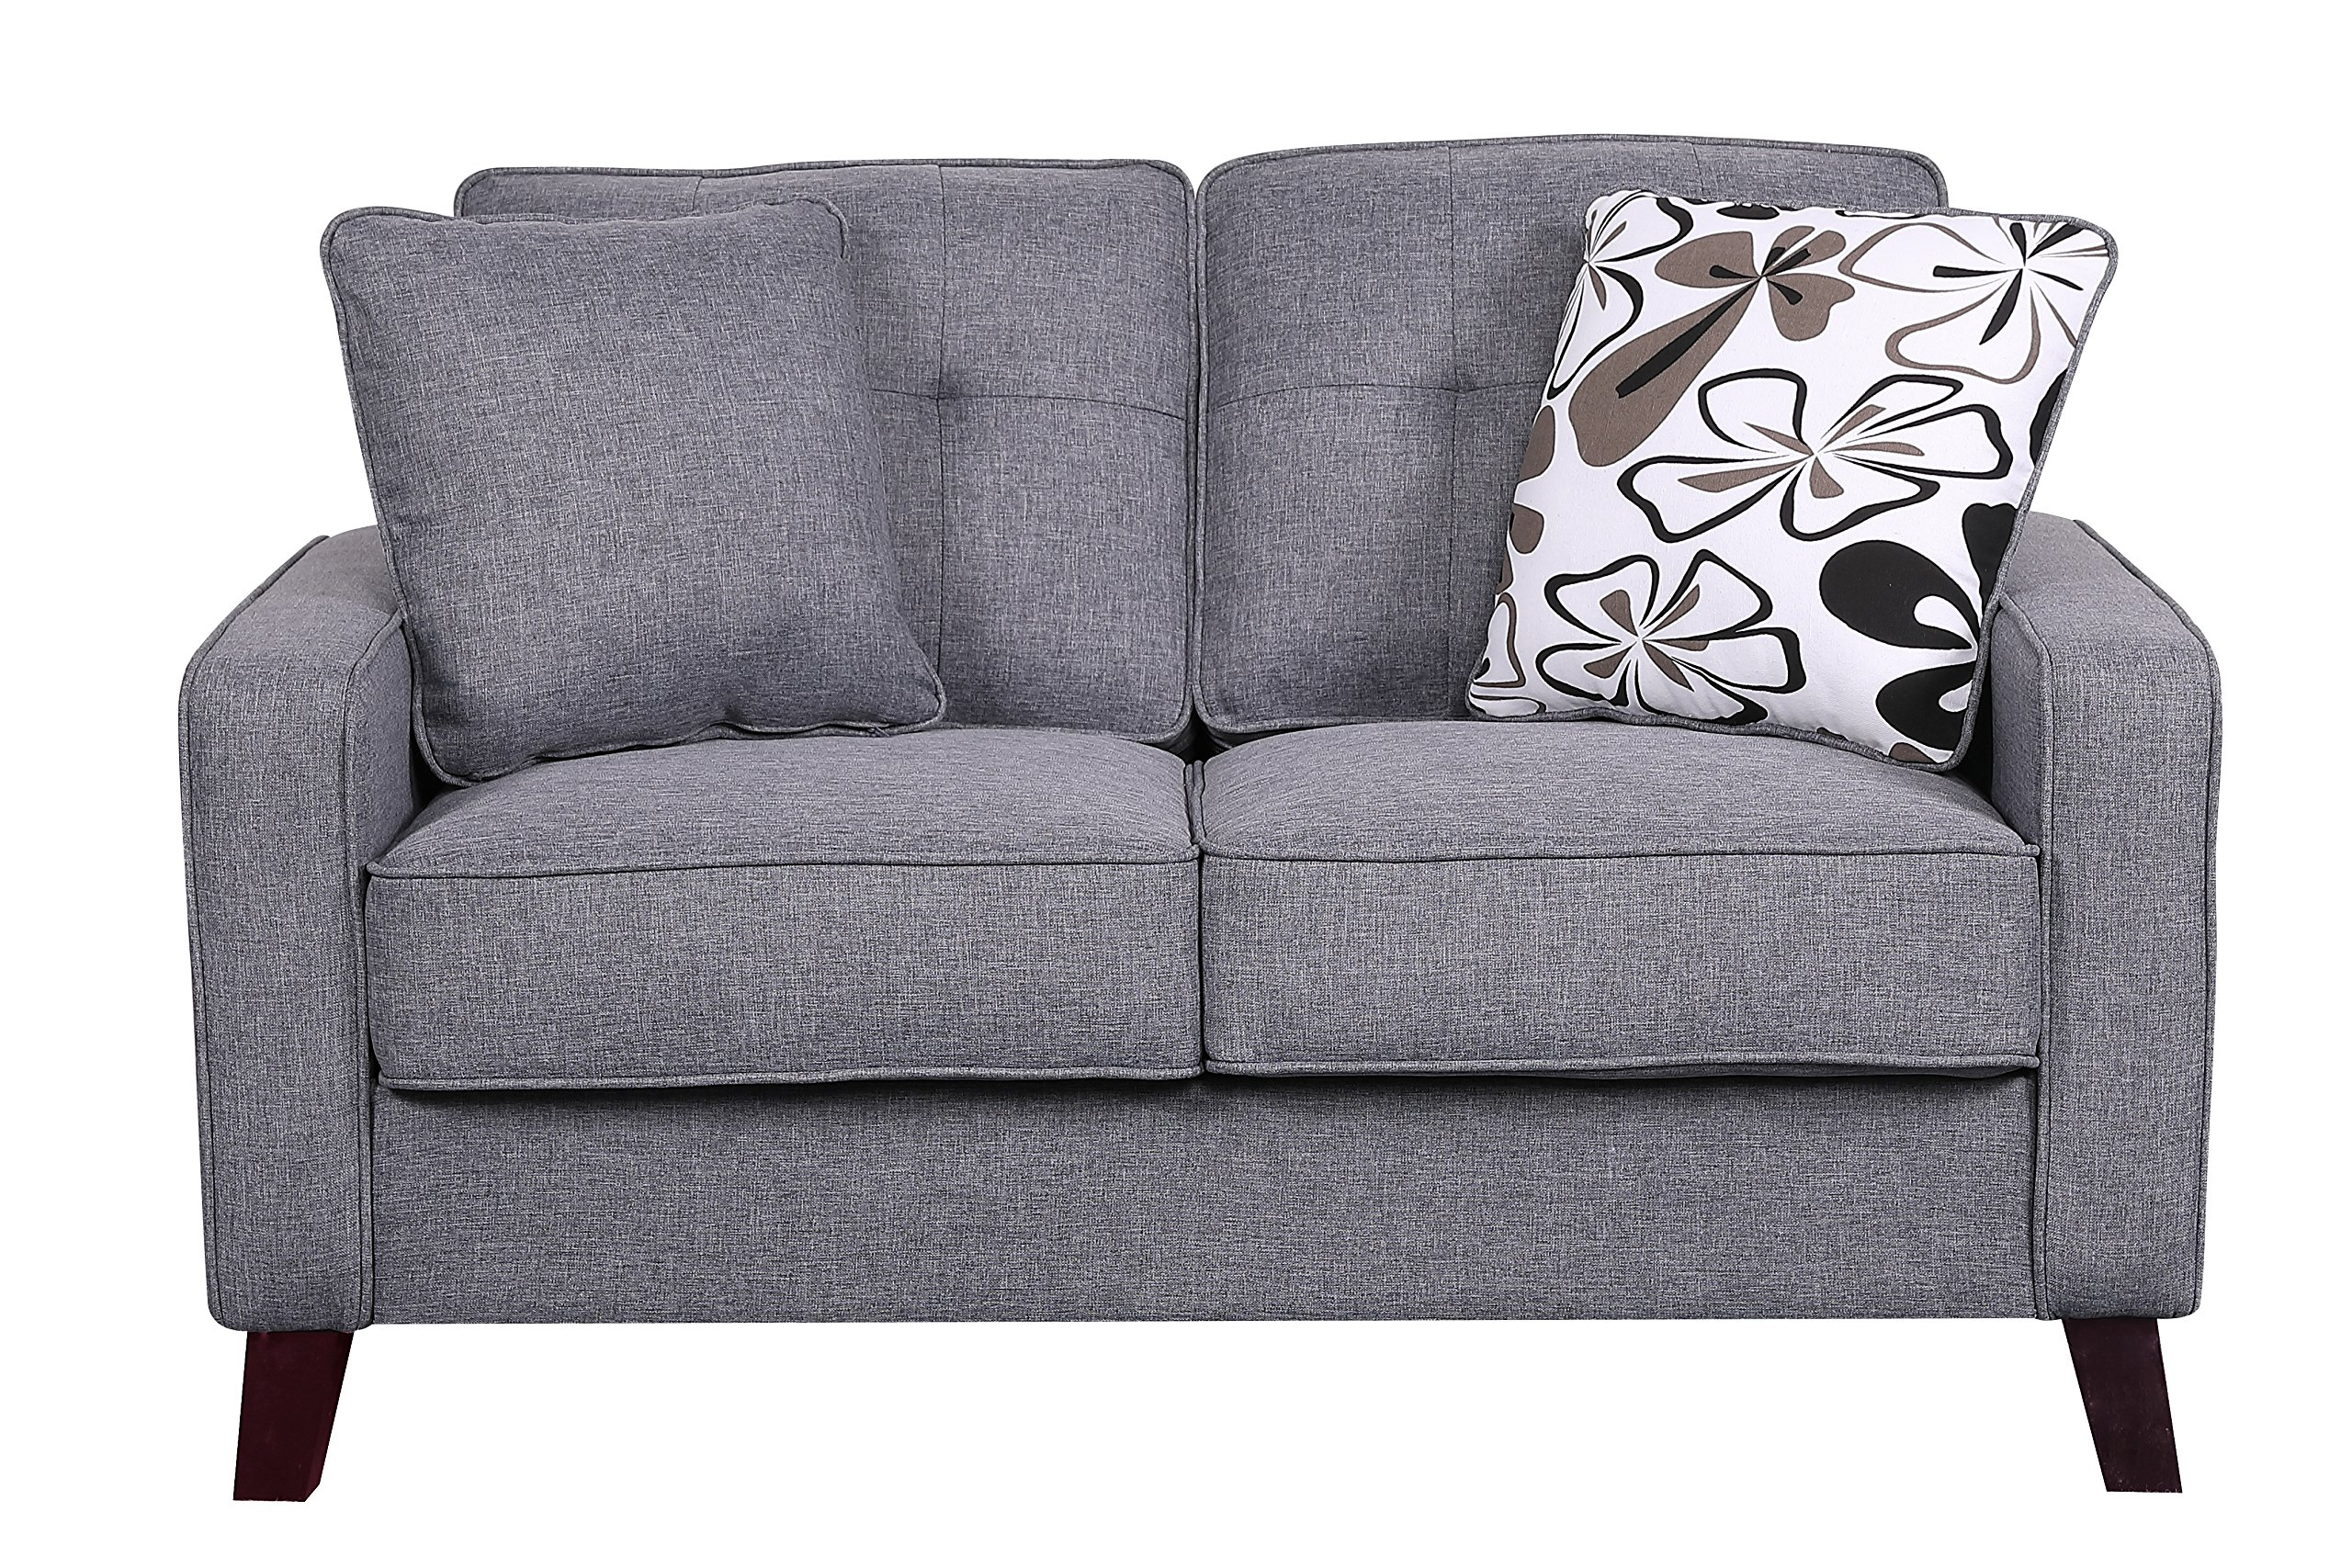 e2abbc4c0f91cb Get Quotations · Container Furniture Direct Modern Collection Upholstered  Linen Loveseat With Wood Legs and Two Button Tufted Accent